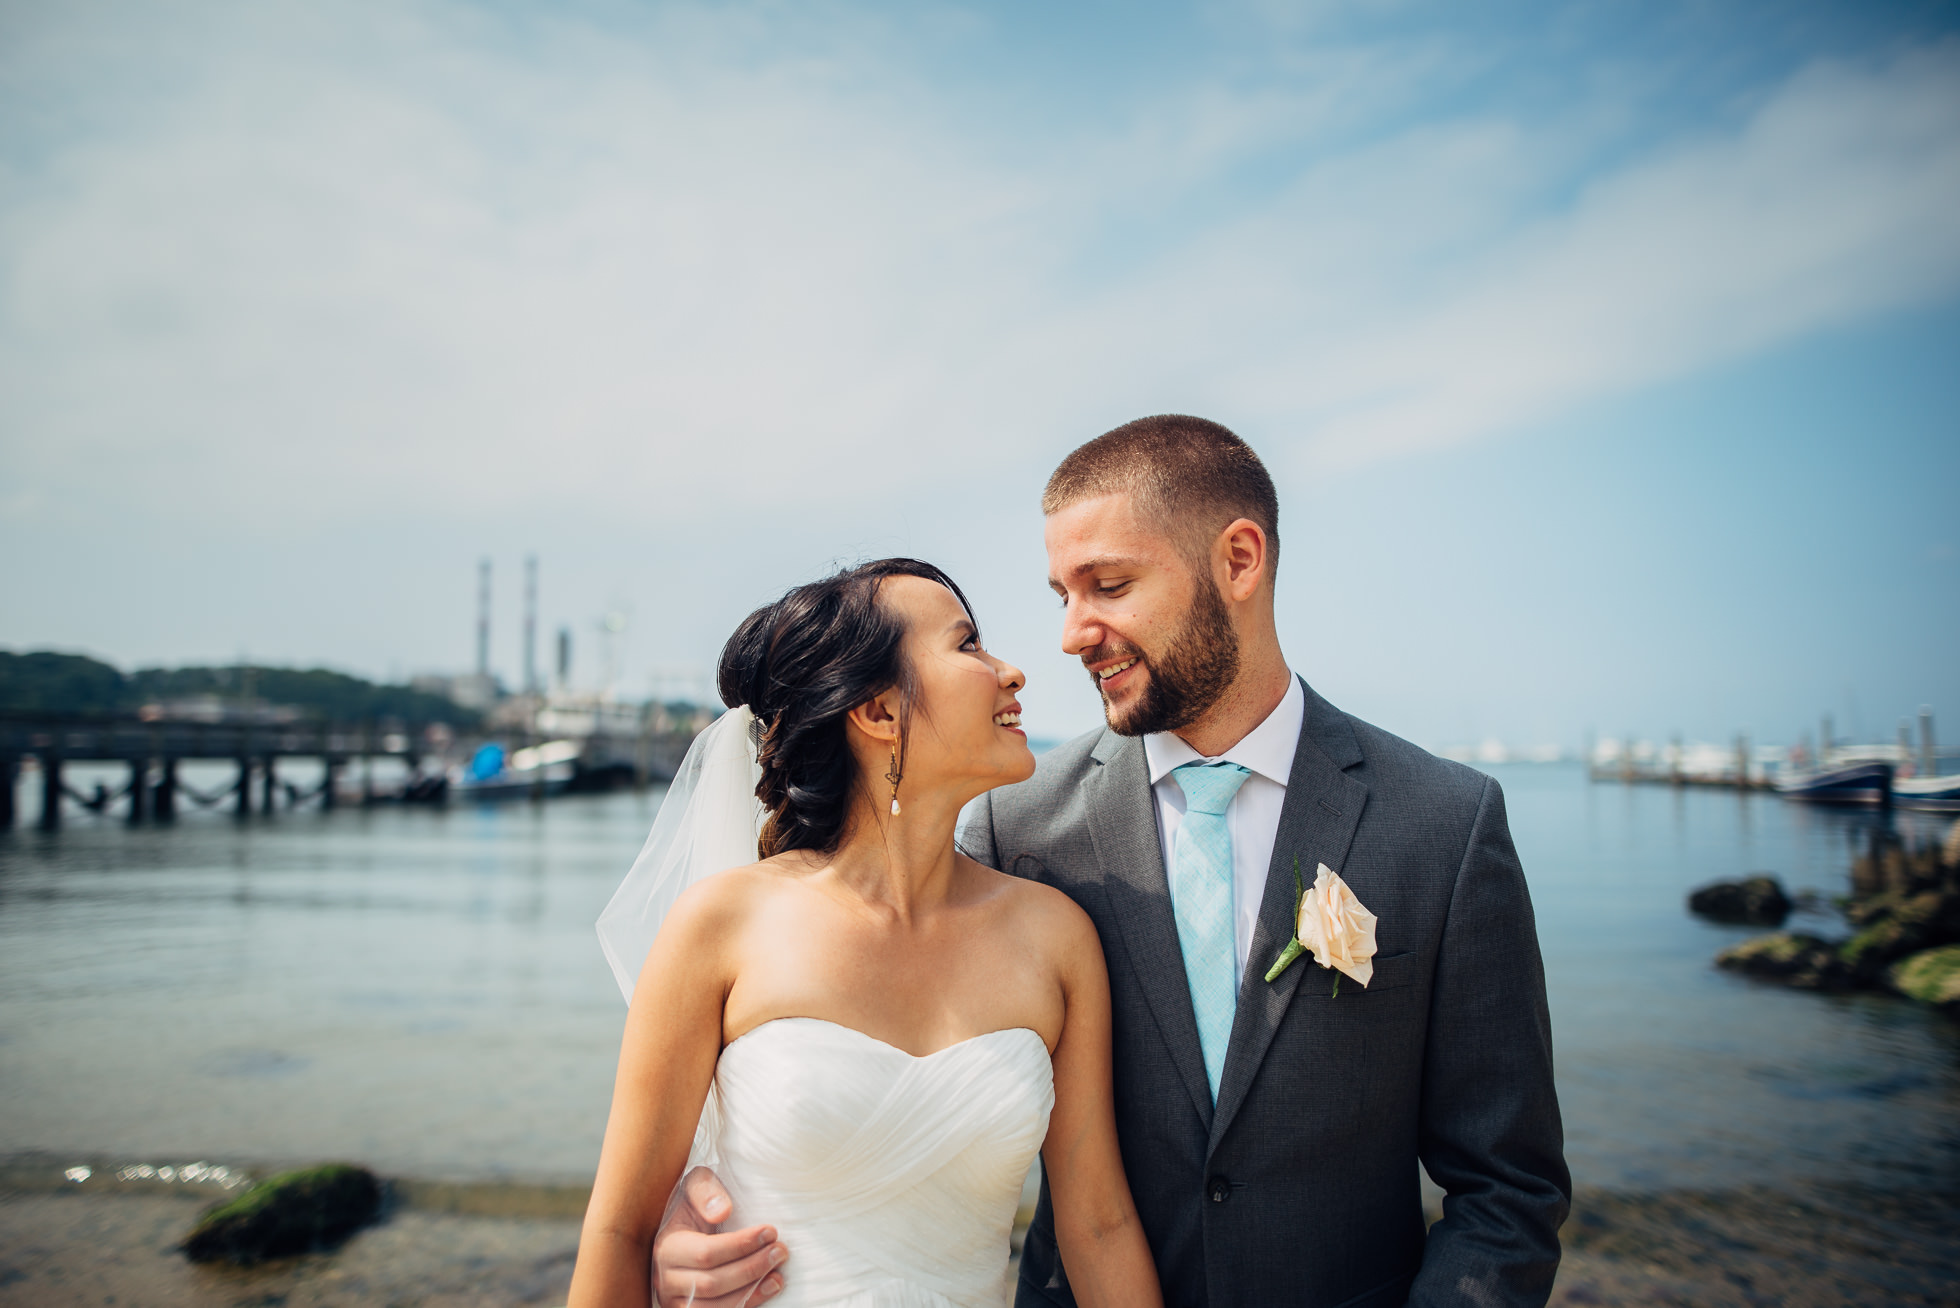 Danford's wedding Port Jefferson docks boardwalk oceanview